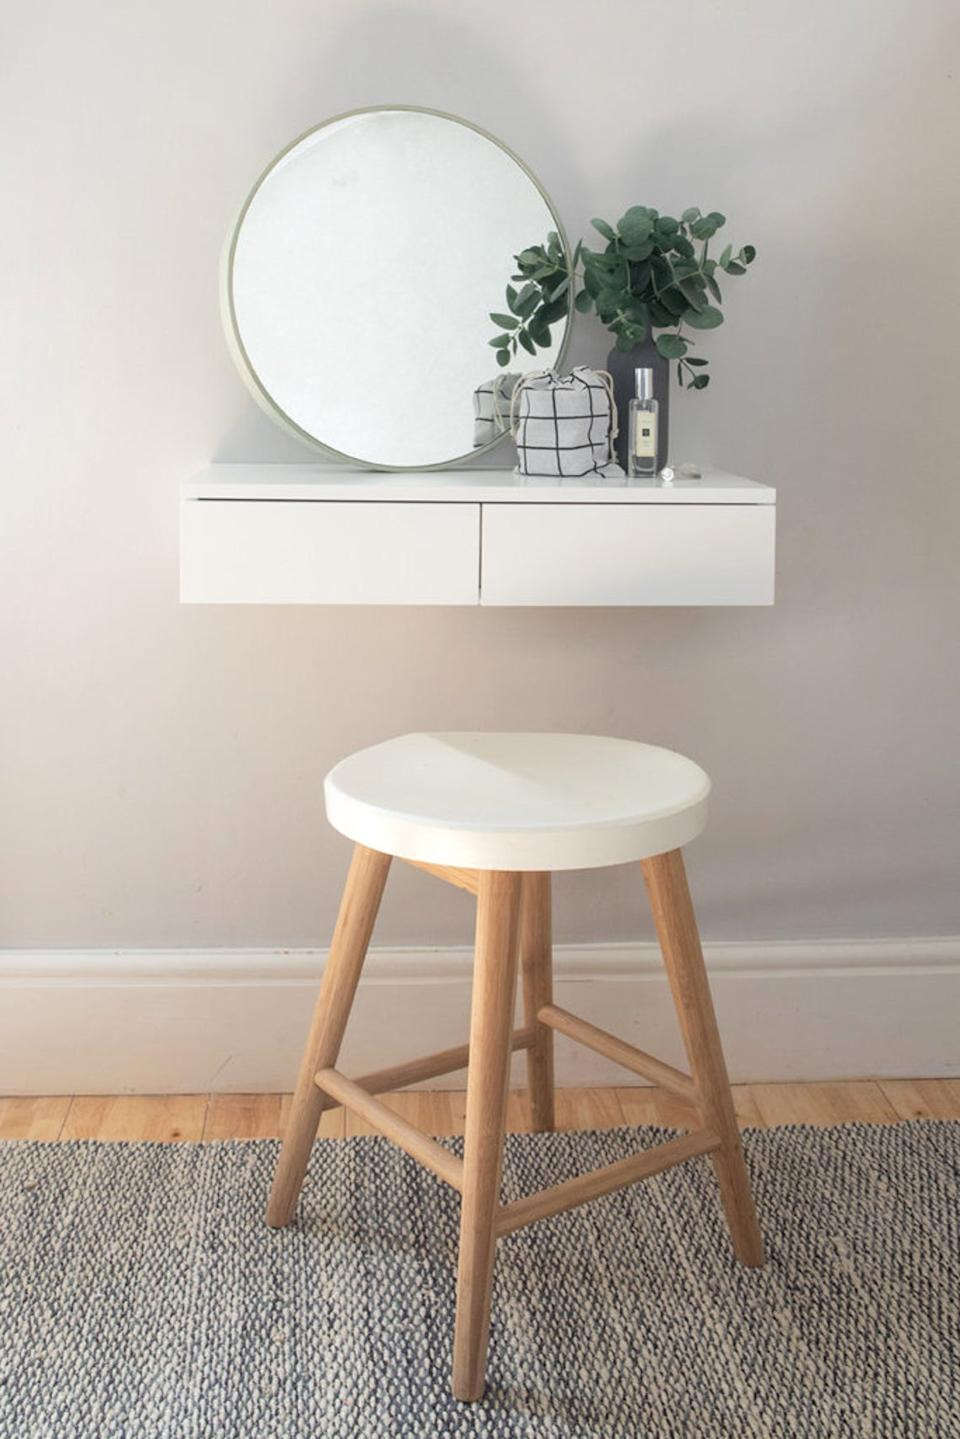 """<h3>Urbansize Small Floating Dressing Table<br></h3> <br>This Etsy shop dedicated to crafting urban-sized (aka small-space friendly) furniture solutions boasts quite the <a href=""""https://www.etsy.com/shop/Urbansize"""" rel=""""nofollow noopener"""" target=""""_blank"""" data-ylk=""""slk:stacked lineup of incredibly stylish and minimalist floating desk setups"""" class=""""link rapid-noclick-resp"""">stacked lineup of incredibly stylish and minimalist floating desk setups</a>. <br><br><strong>Urbansize</strong> Small Floating Dressing Table White, $, available at <a href=""""https://go.skimresources.com/?id=30283X879131&url=https%3A%2F%2Fwww.etsy.com%2Flisting%2F718170427%2Fsmall-floating-dressing-table-white"""" rel=""""nofollow noopener"""" target=""""_blank"""" data-ylk=""""slk:Etsy"""" class=""""link rapid-noclick-resp"""">Etsy</a>"""